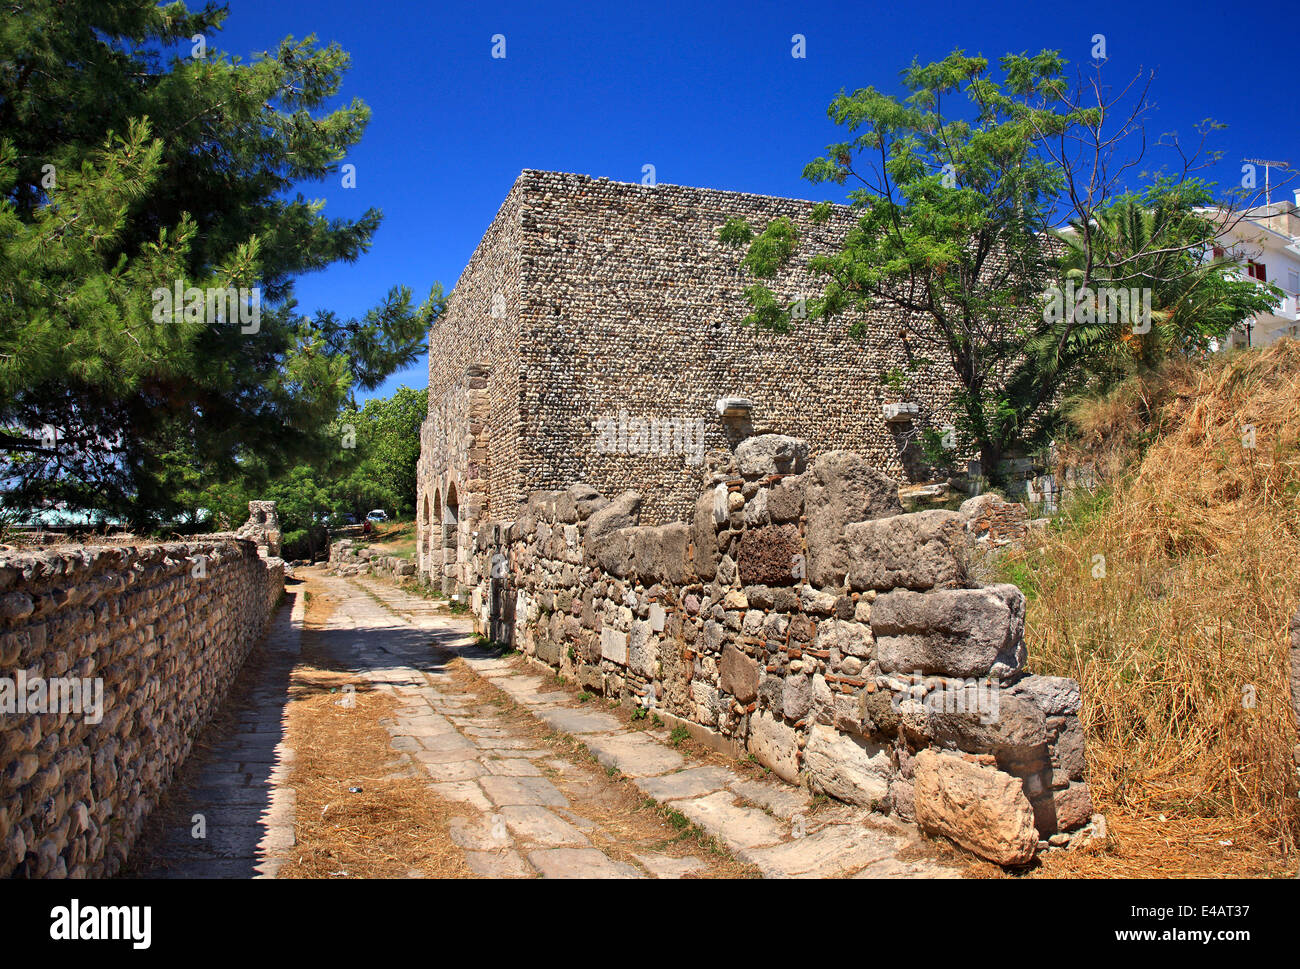 The Nymphaion (Nymphaeum) at the Western Archaeological site of Kos town, Kos island, Dodecanese, Aegean sea, Greece. - Stock Image